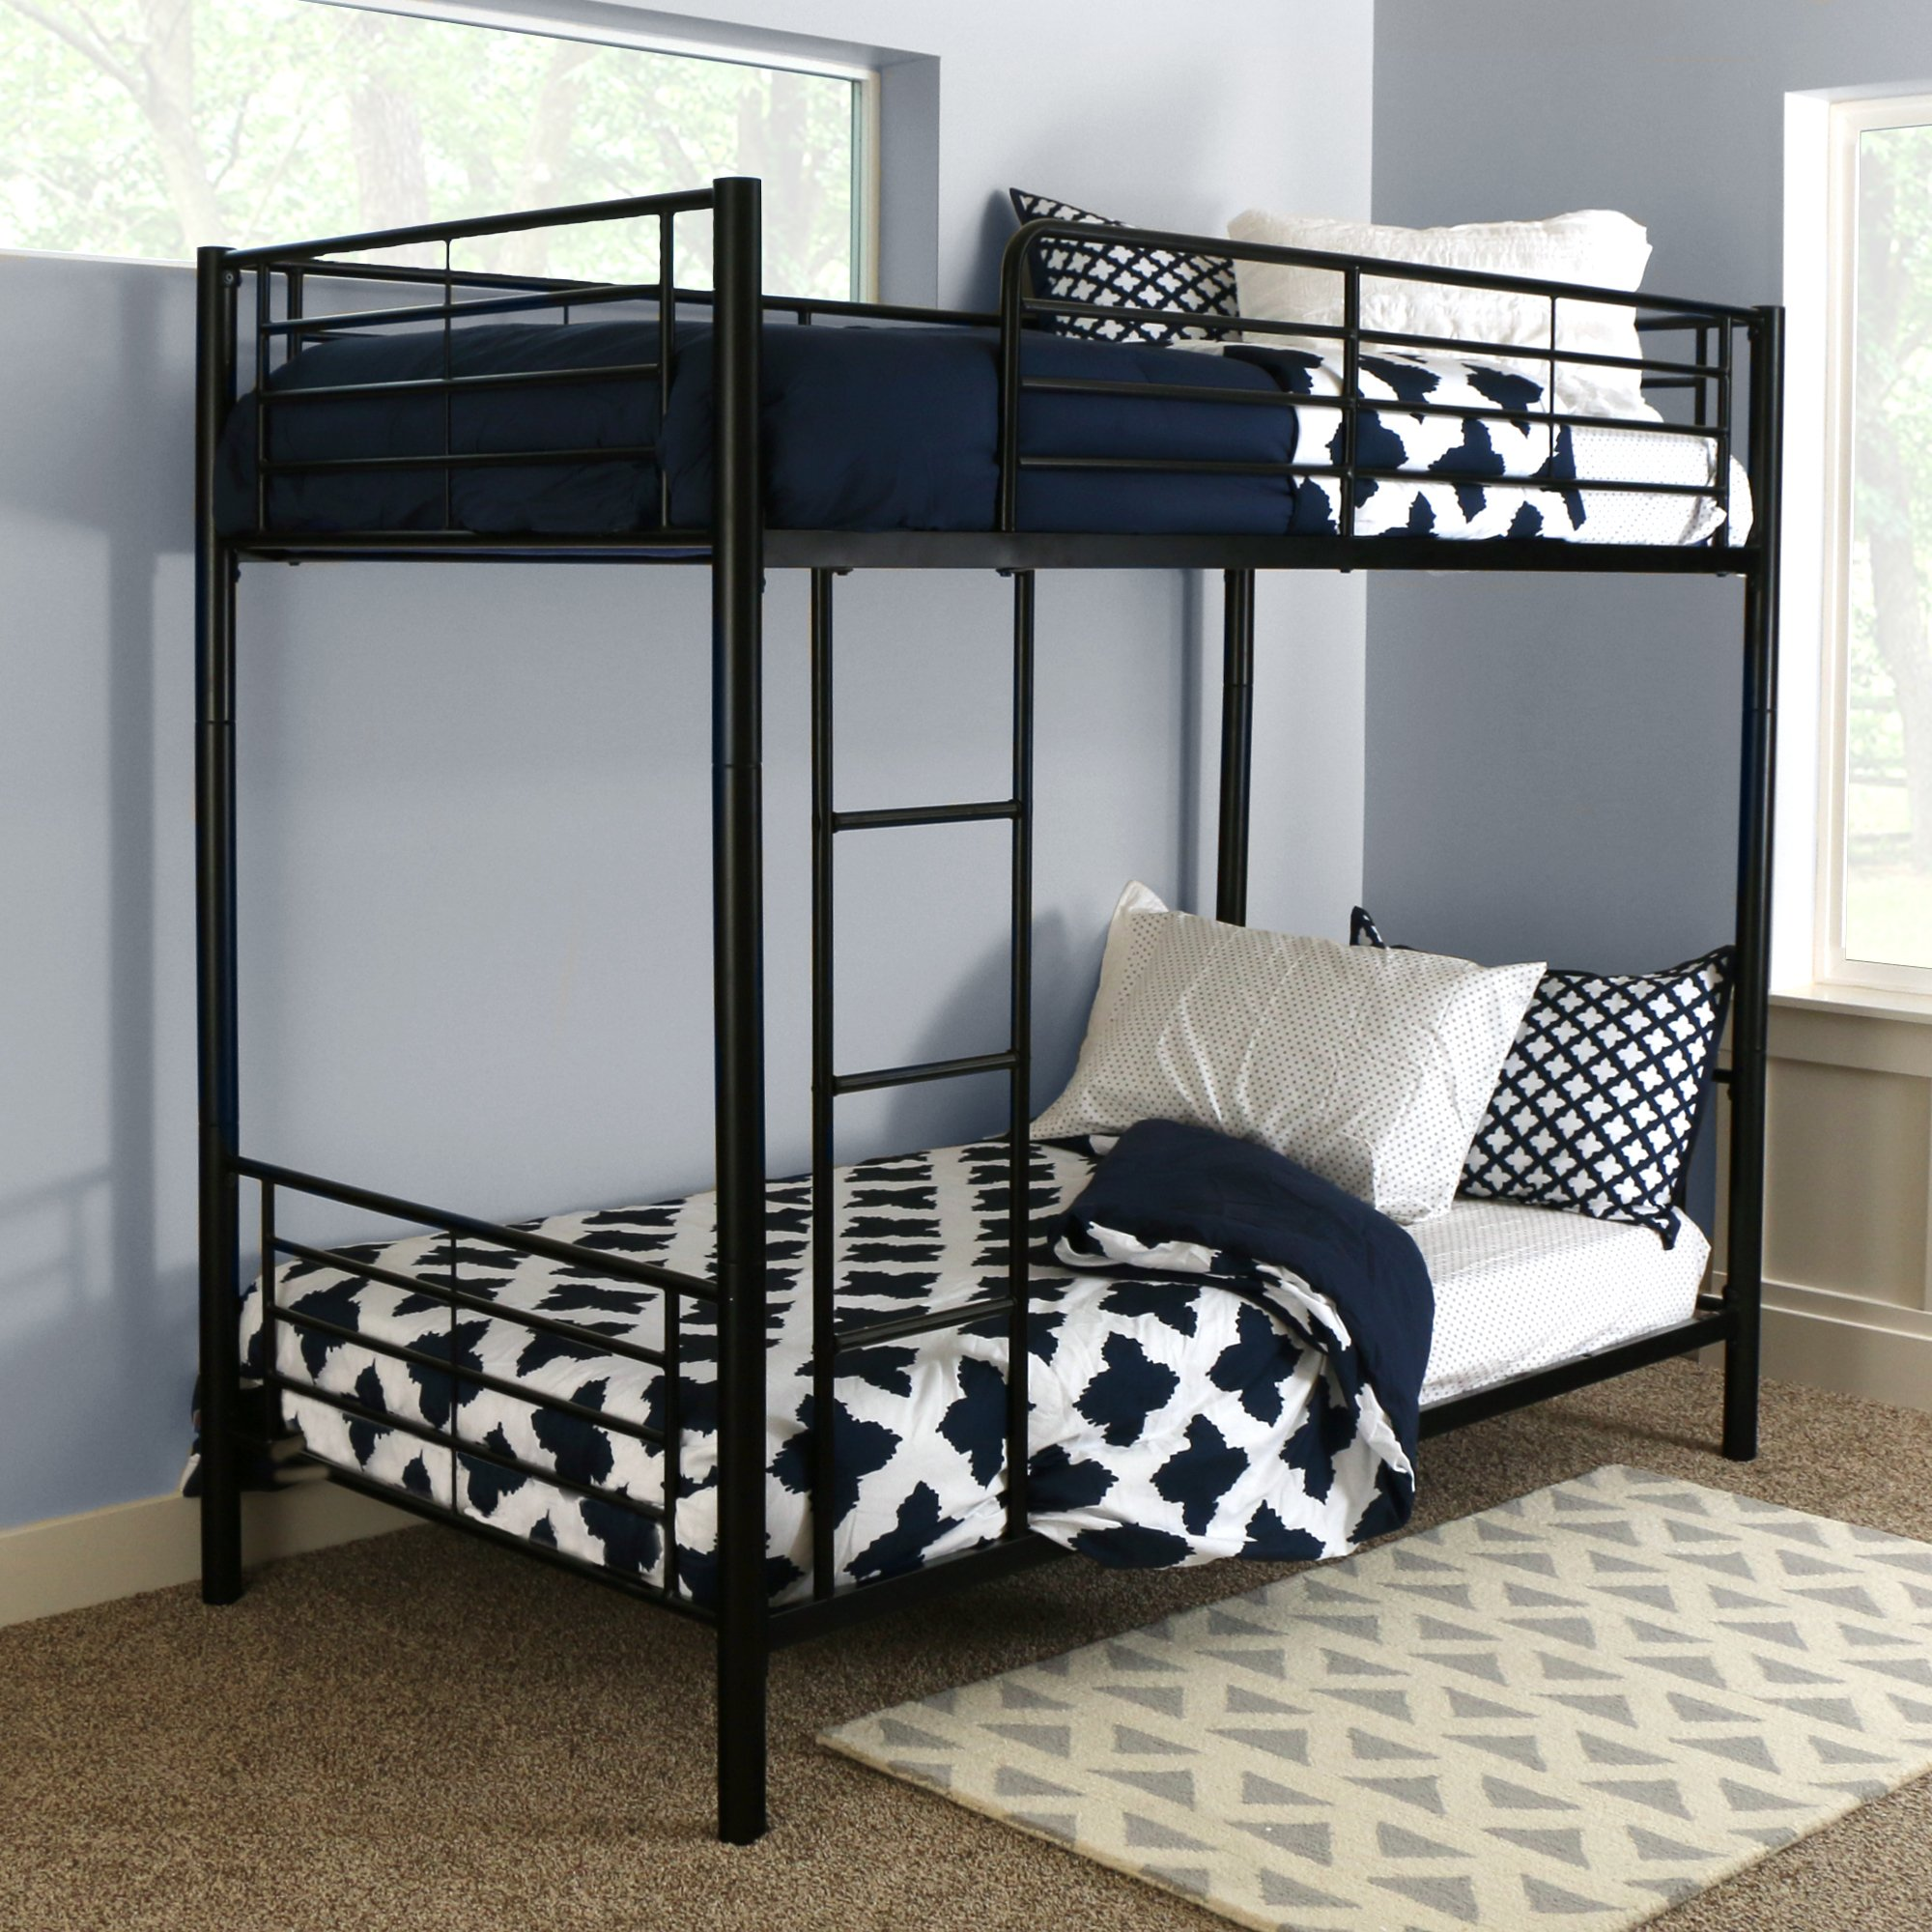 Sturdy Metal Twin-over-Twin Bunk Bed in Black Finish by Home Accent Furnishings (Image #5)